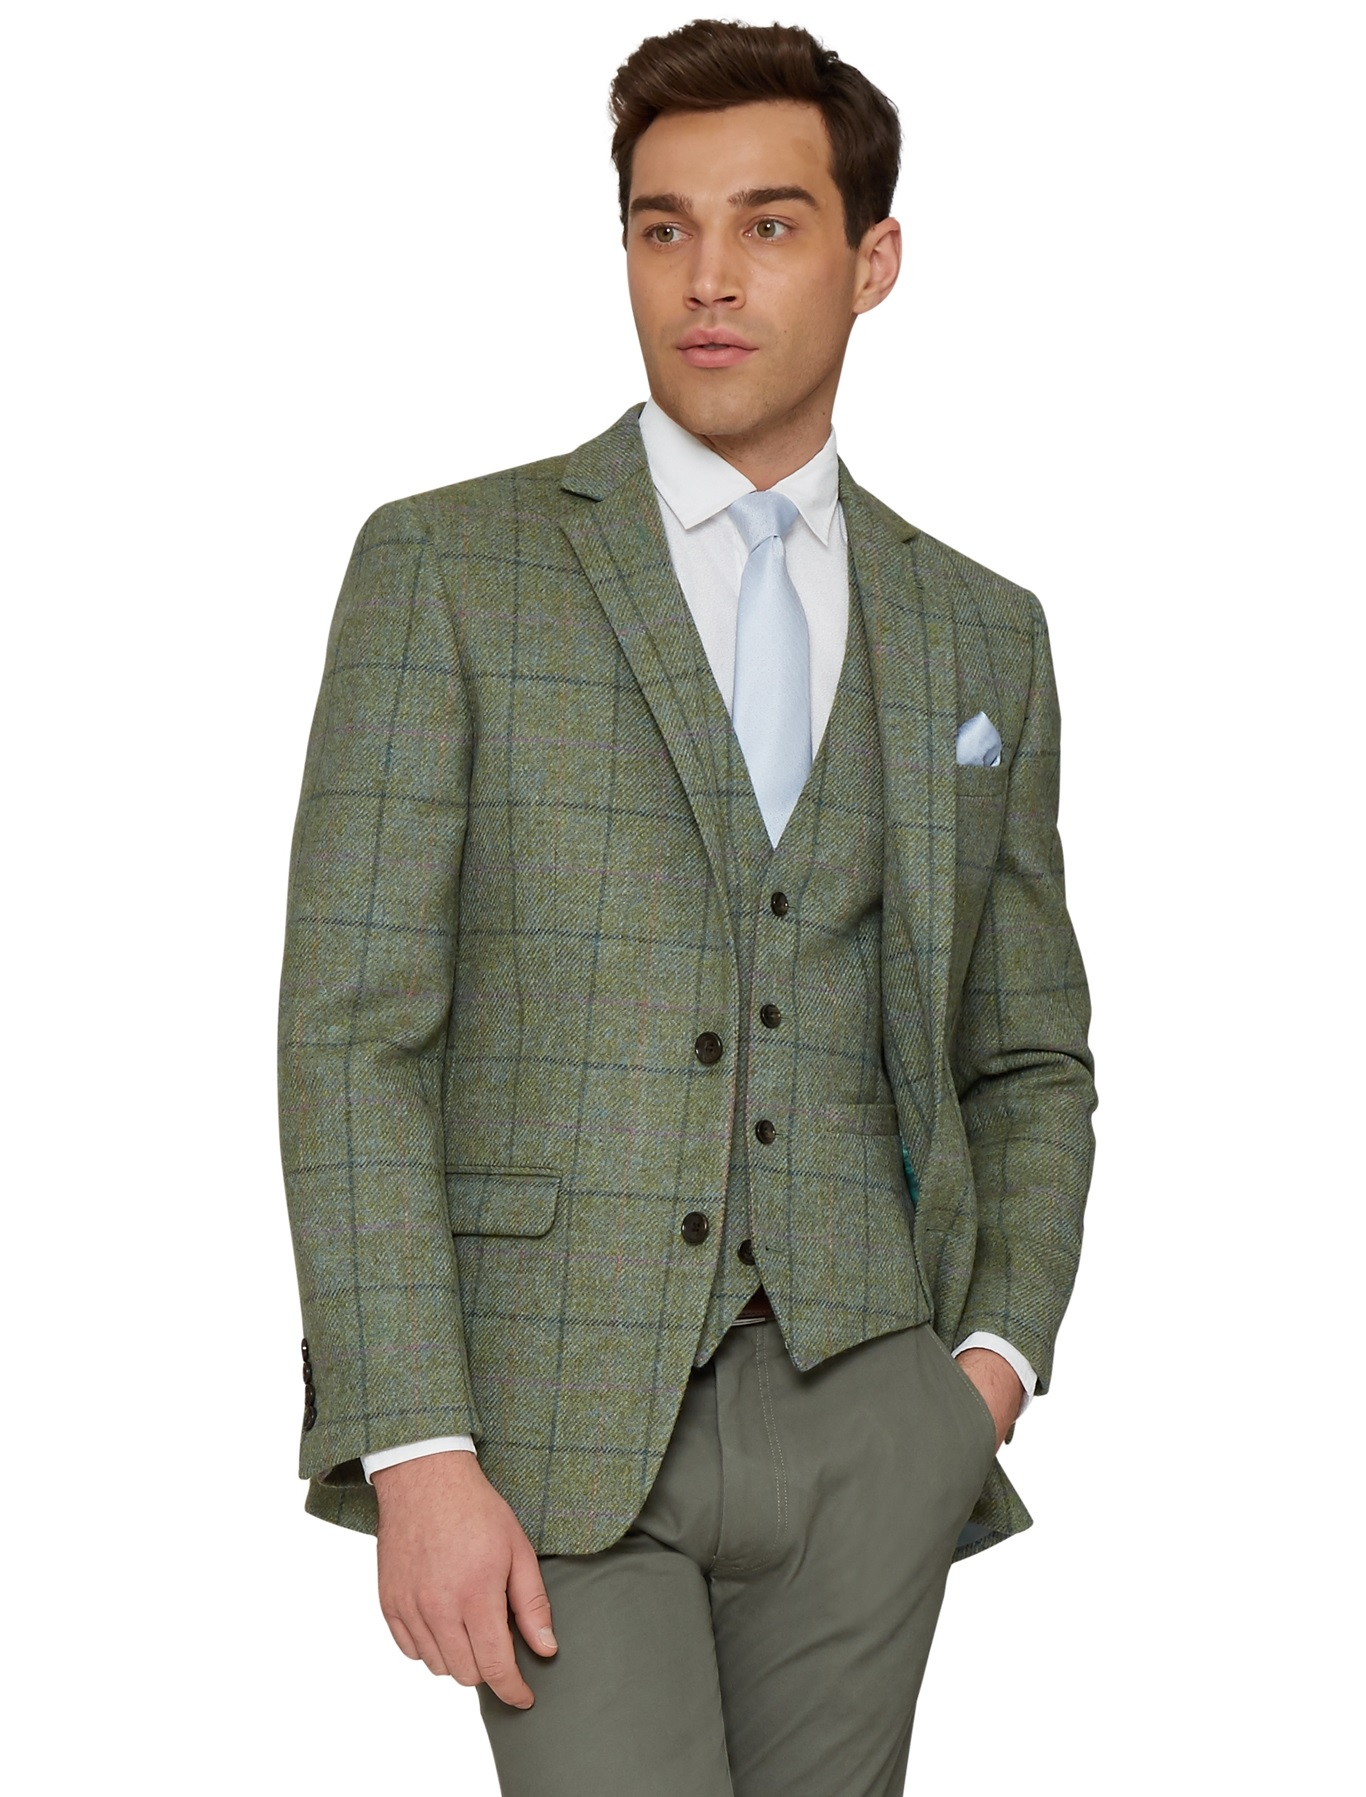 Moss mens clothing stores